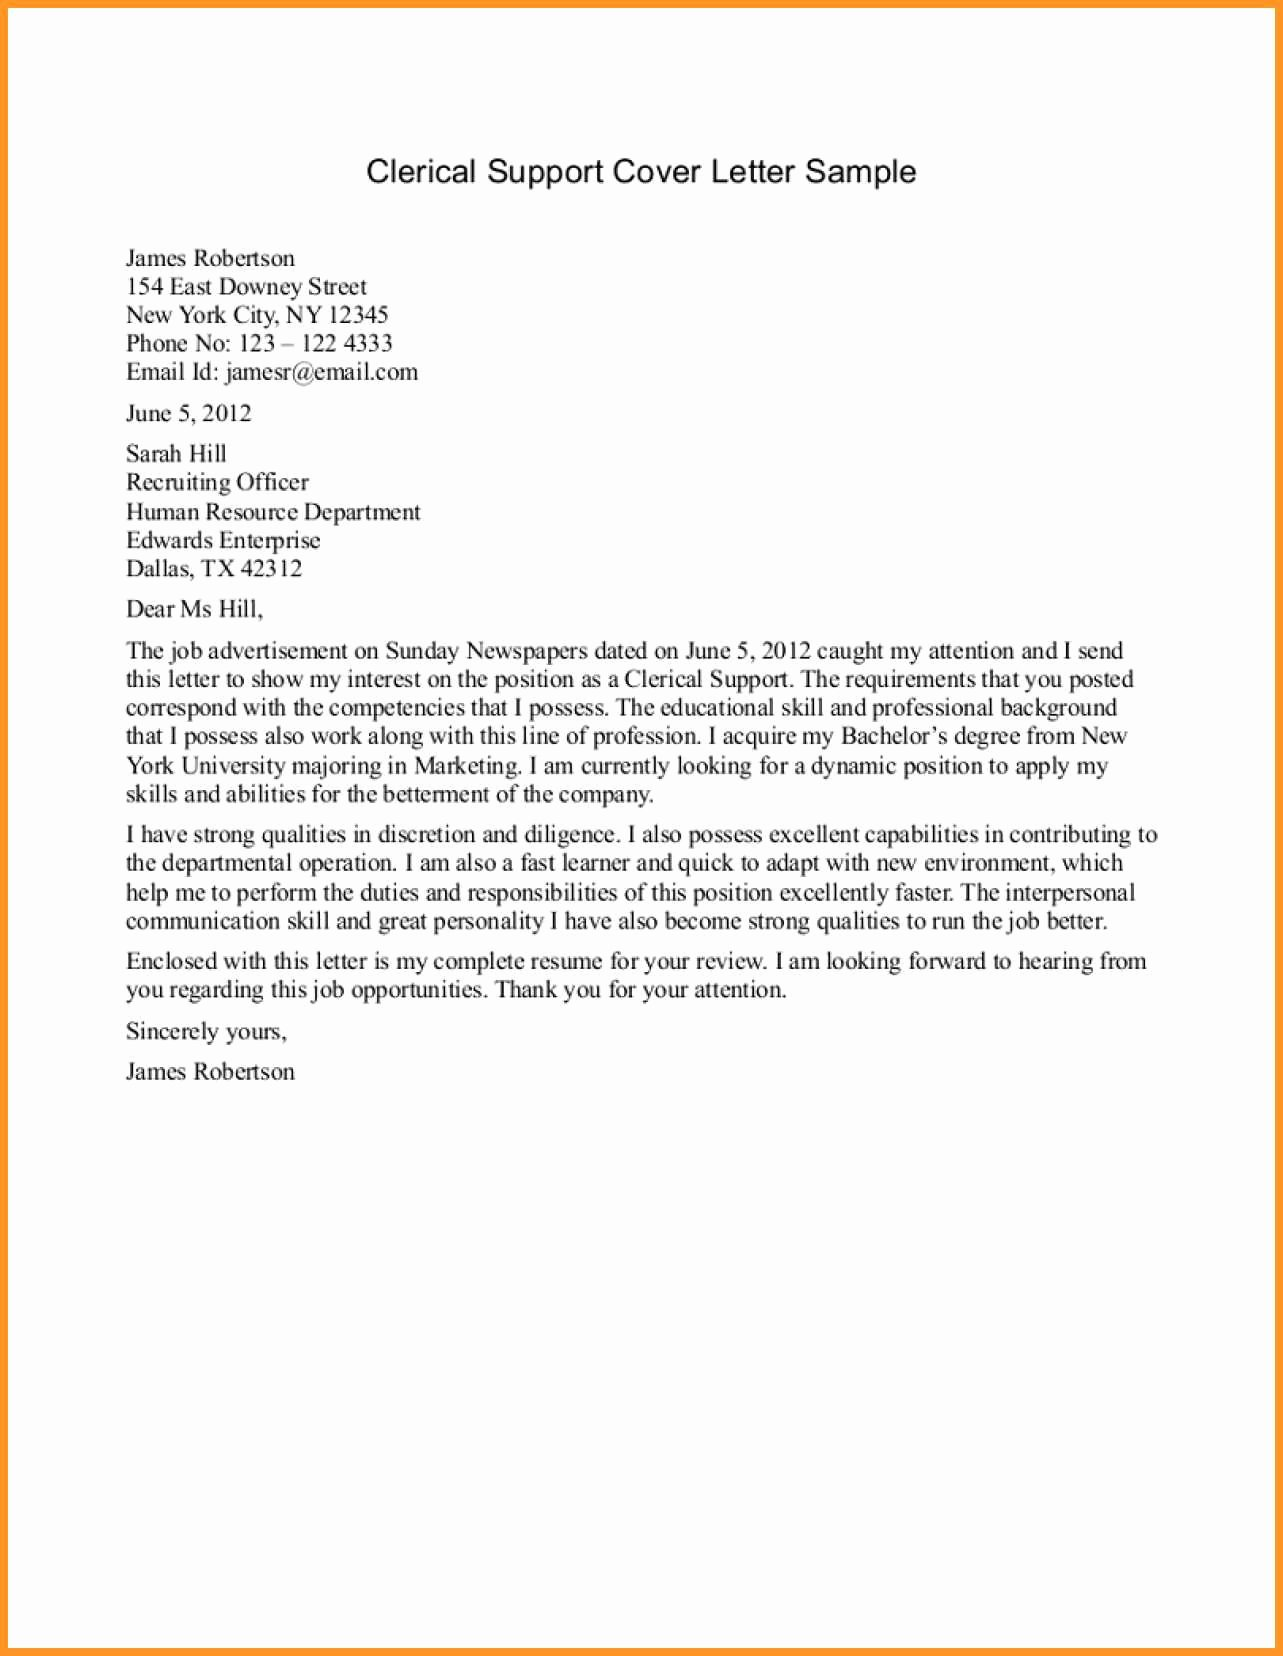 Sample Clerical Cover Letter Best Of 11 12 Clerical Cover Letter Examples